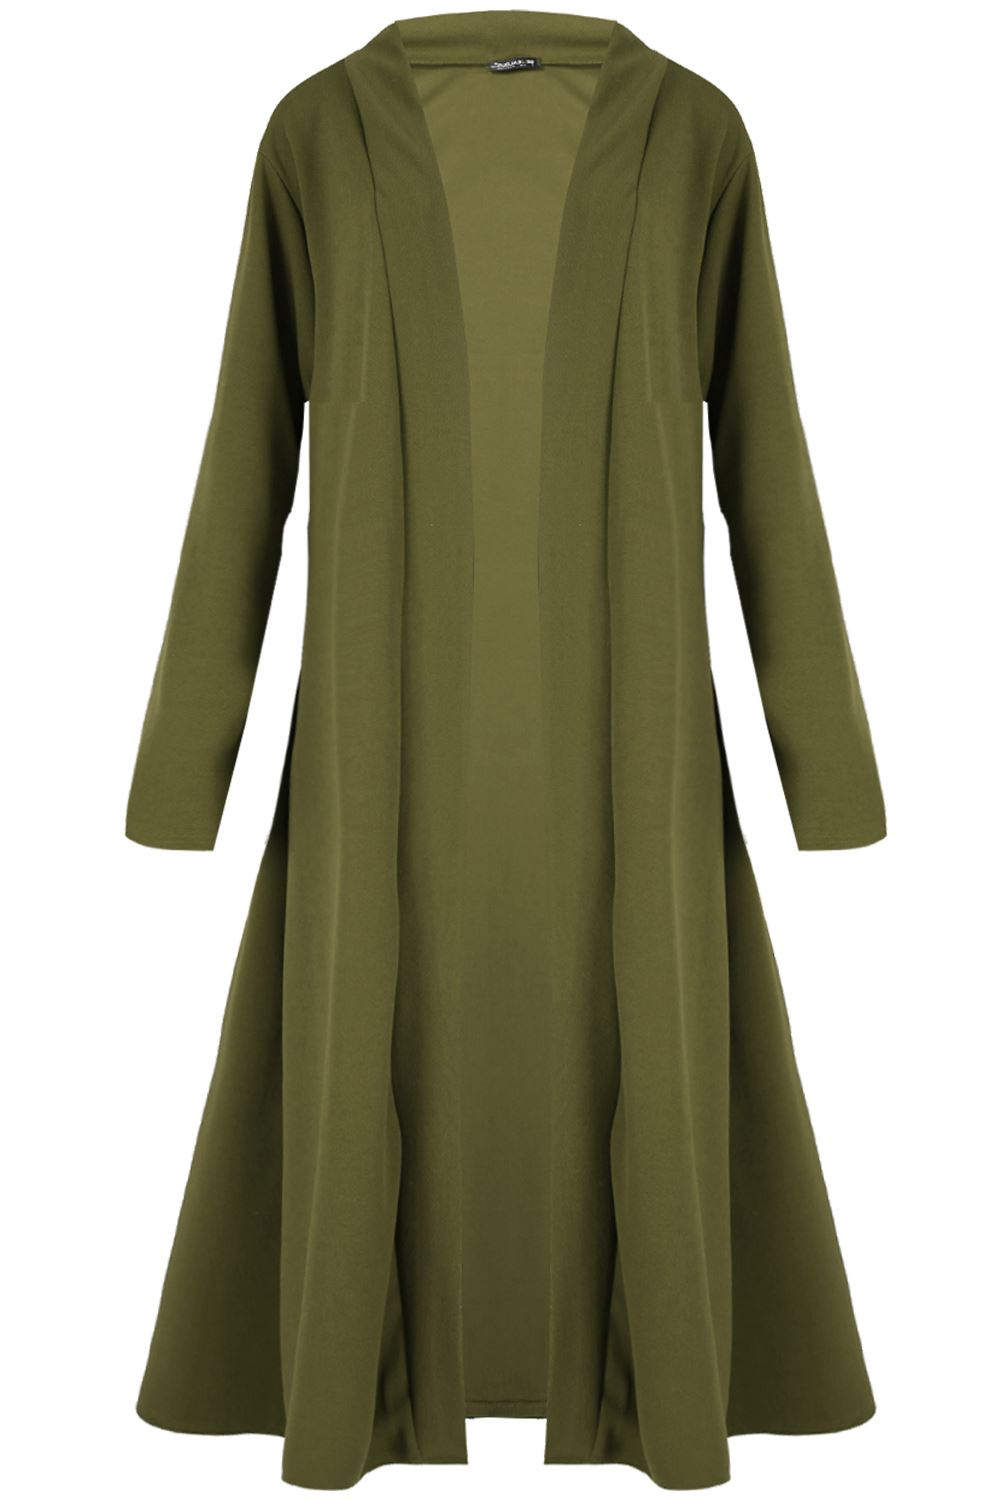 New-Waterfall-Baggy-Women-Cardigan-Maxi-Floaty-Ladies-Open-Trench-Coat-Plus-Size